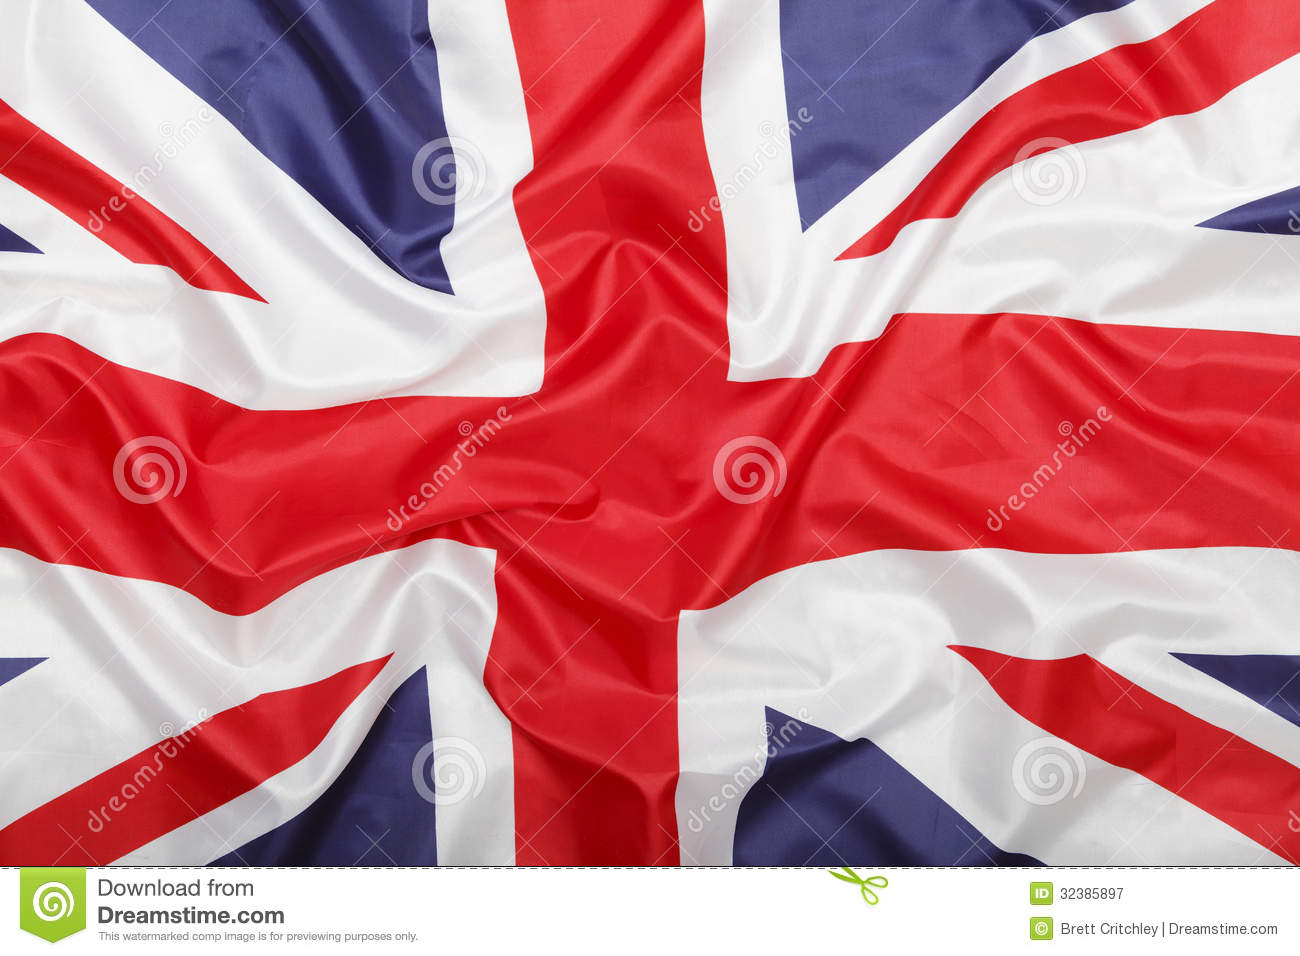 British Union Jack flag background